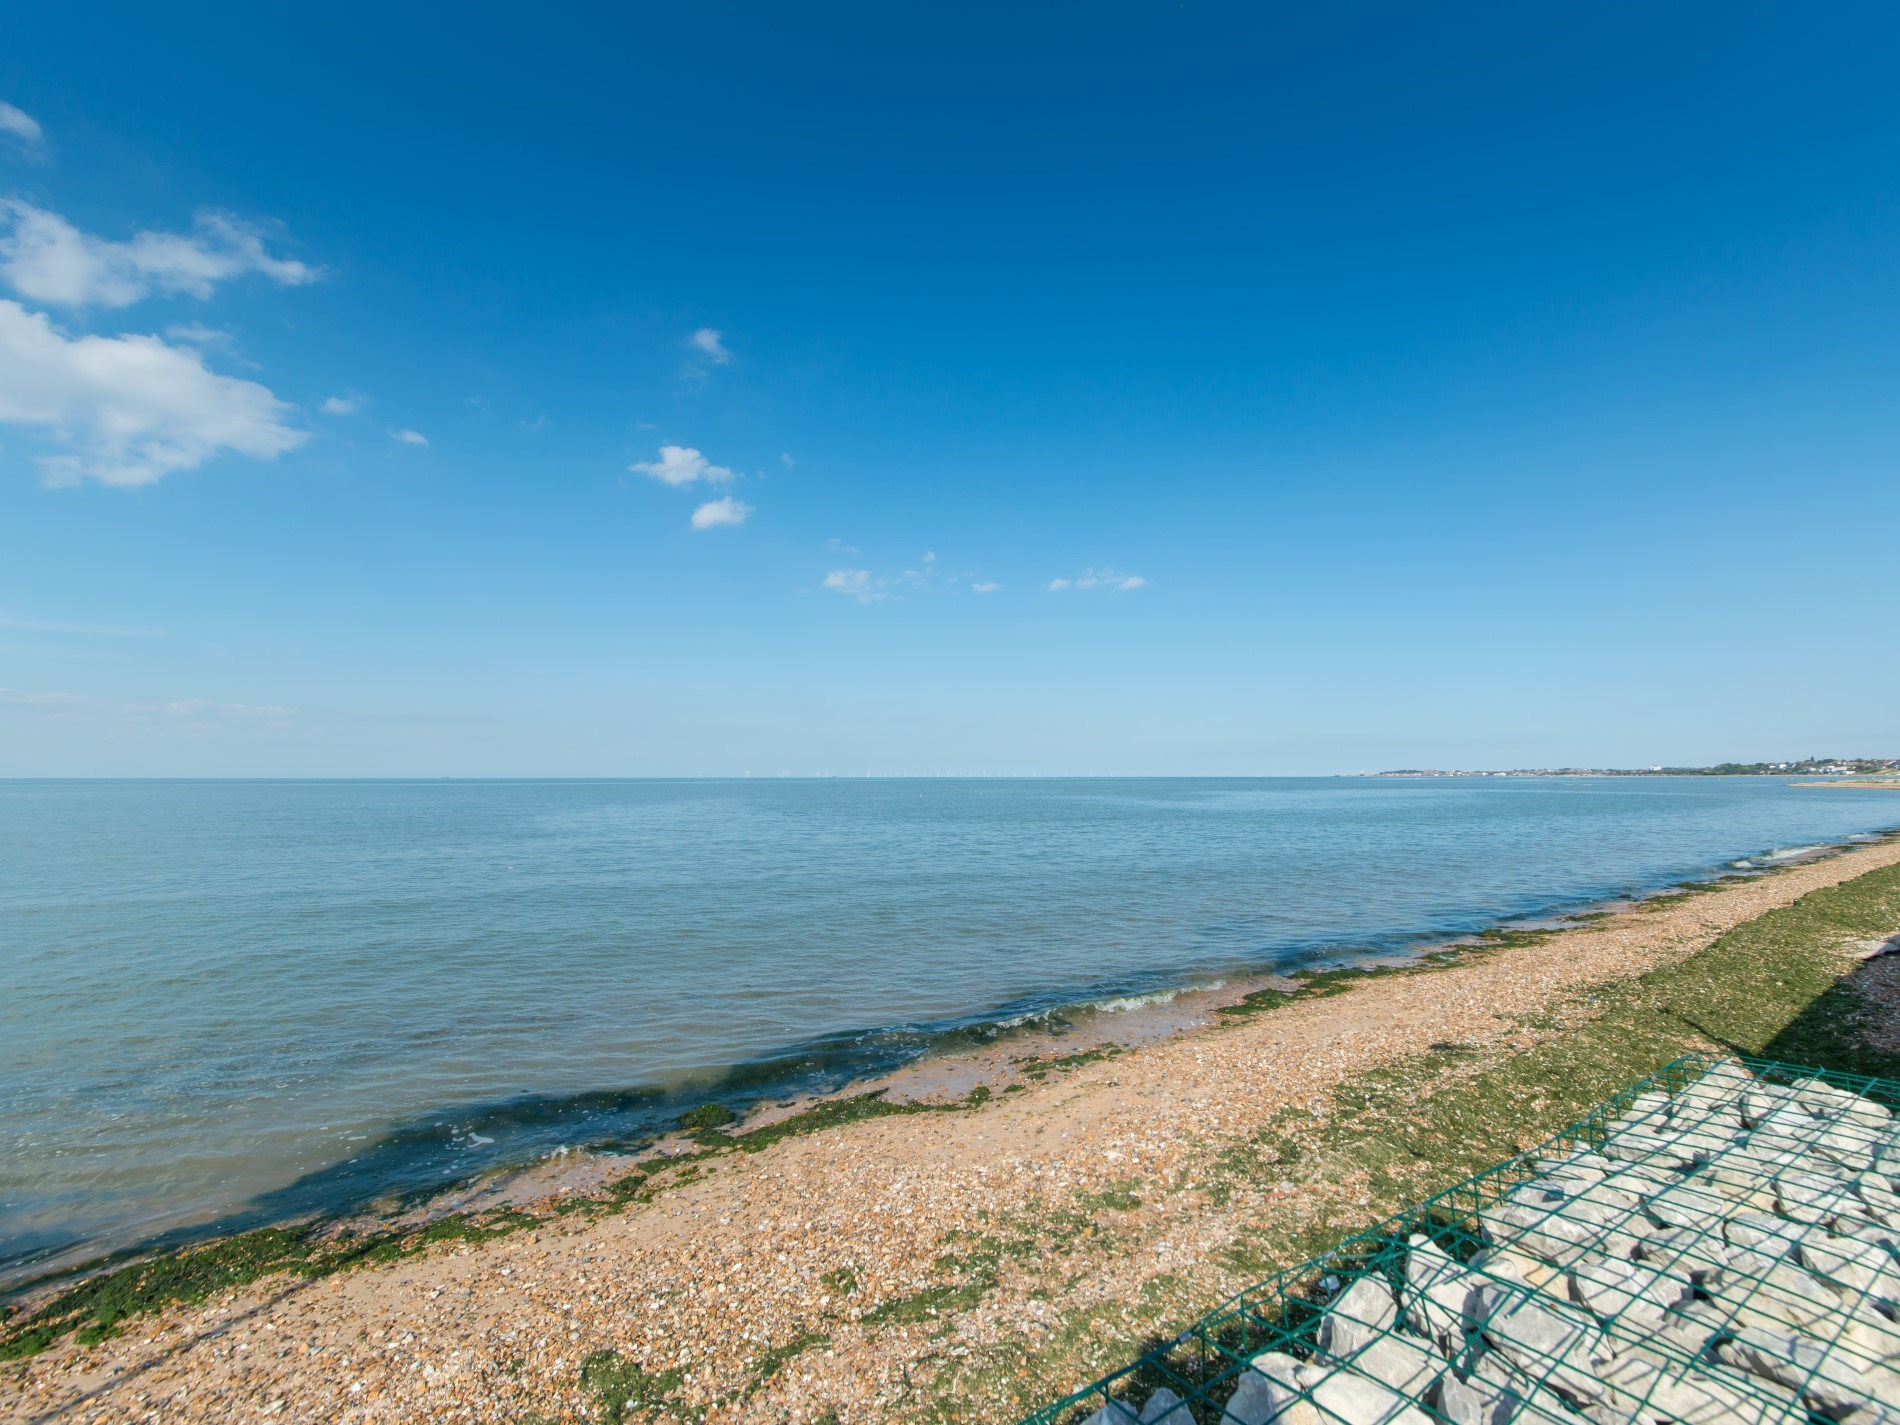 Walk along the beach to Whitstable